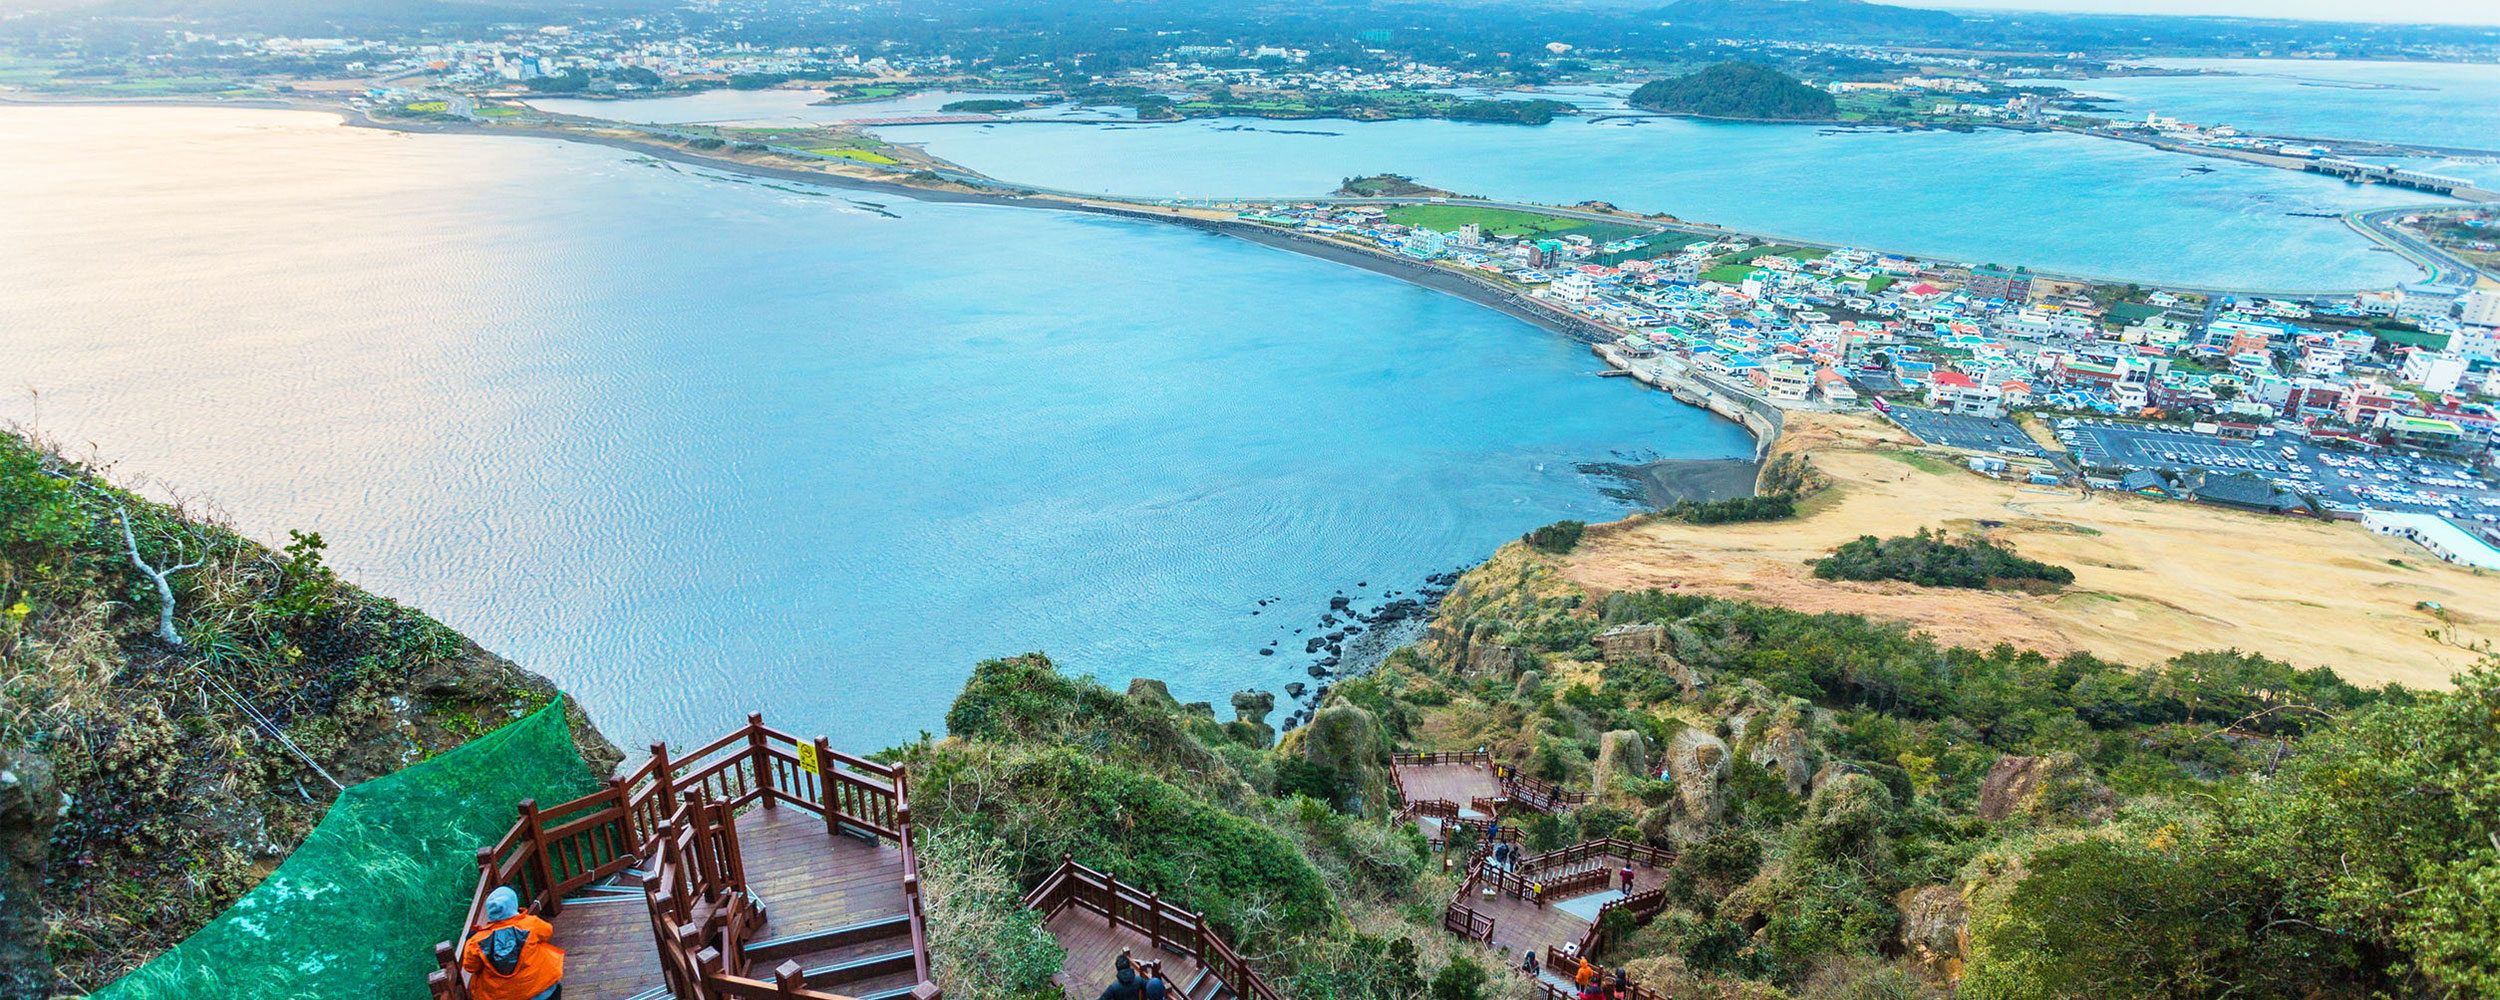 Jeju Island South Korea